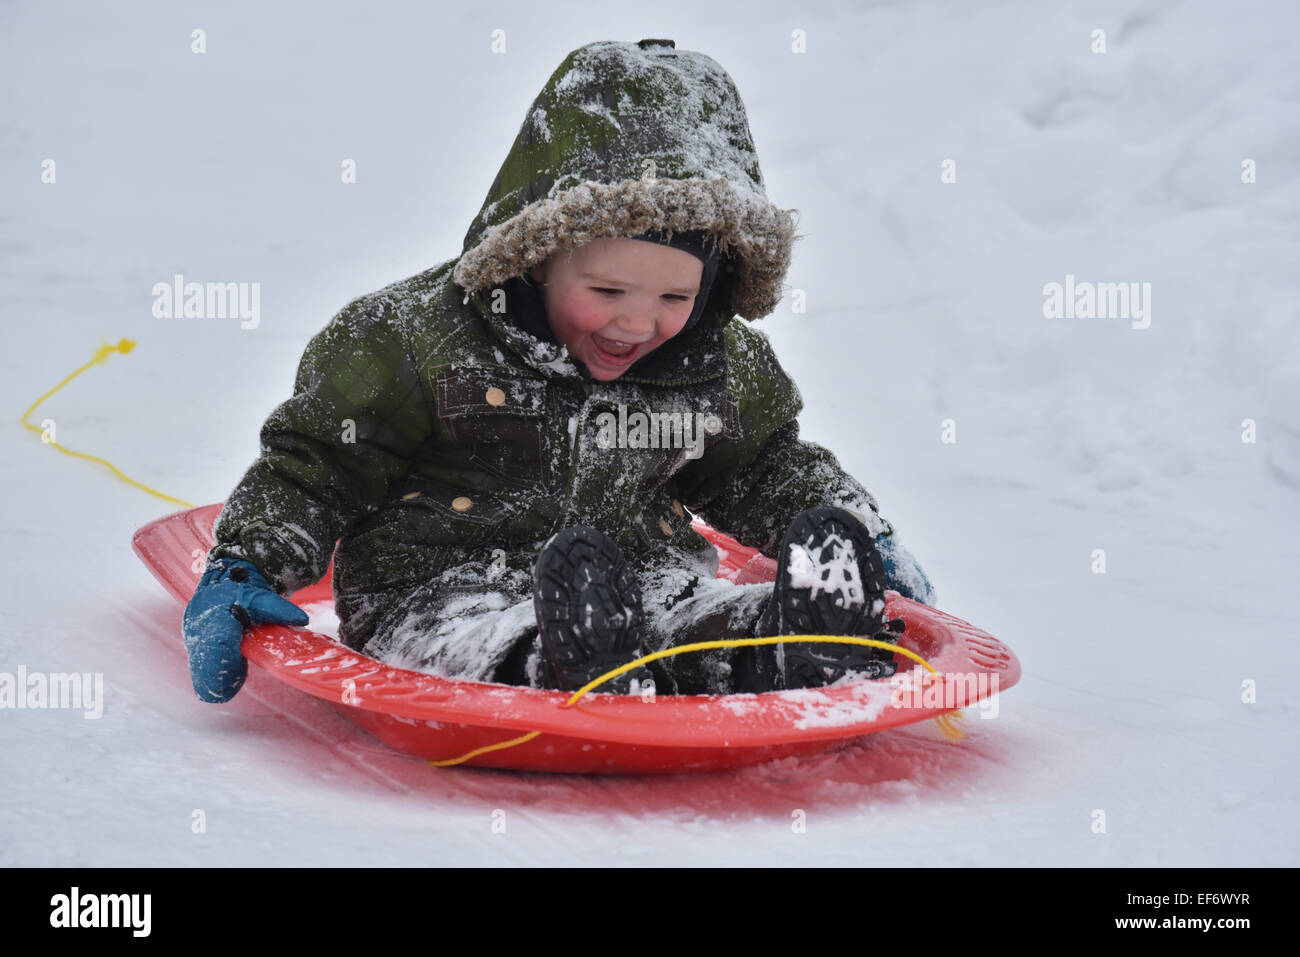 A young boy (2 1/2 yrs) laughing while sledging - Stock Image